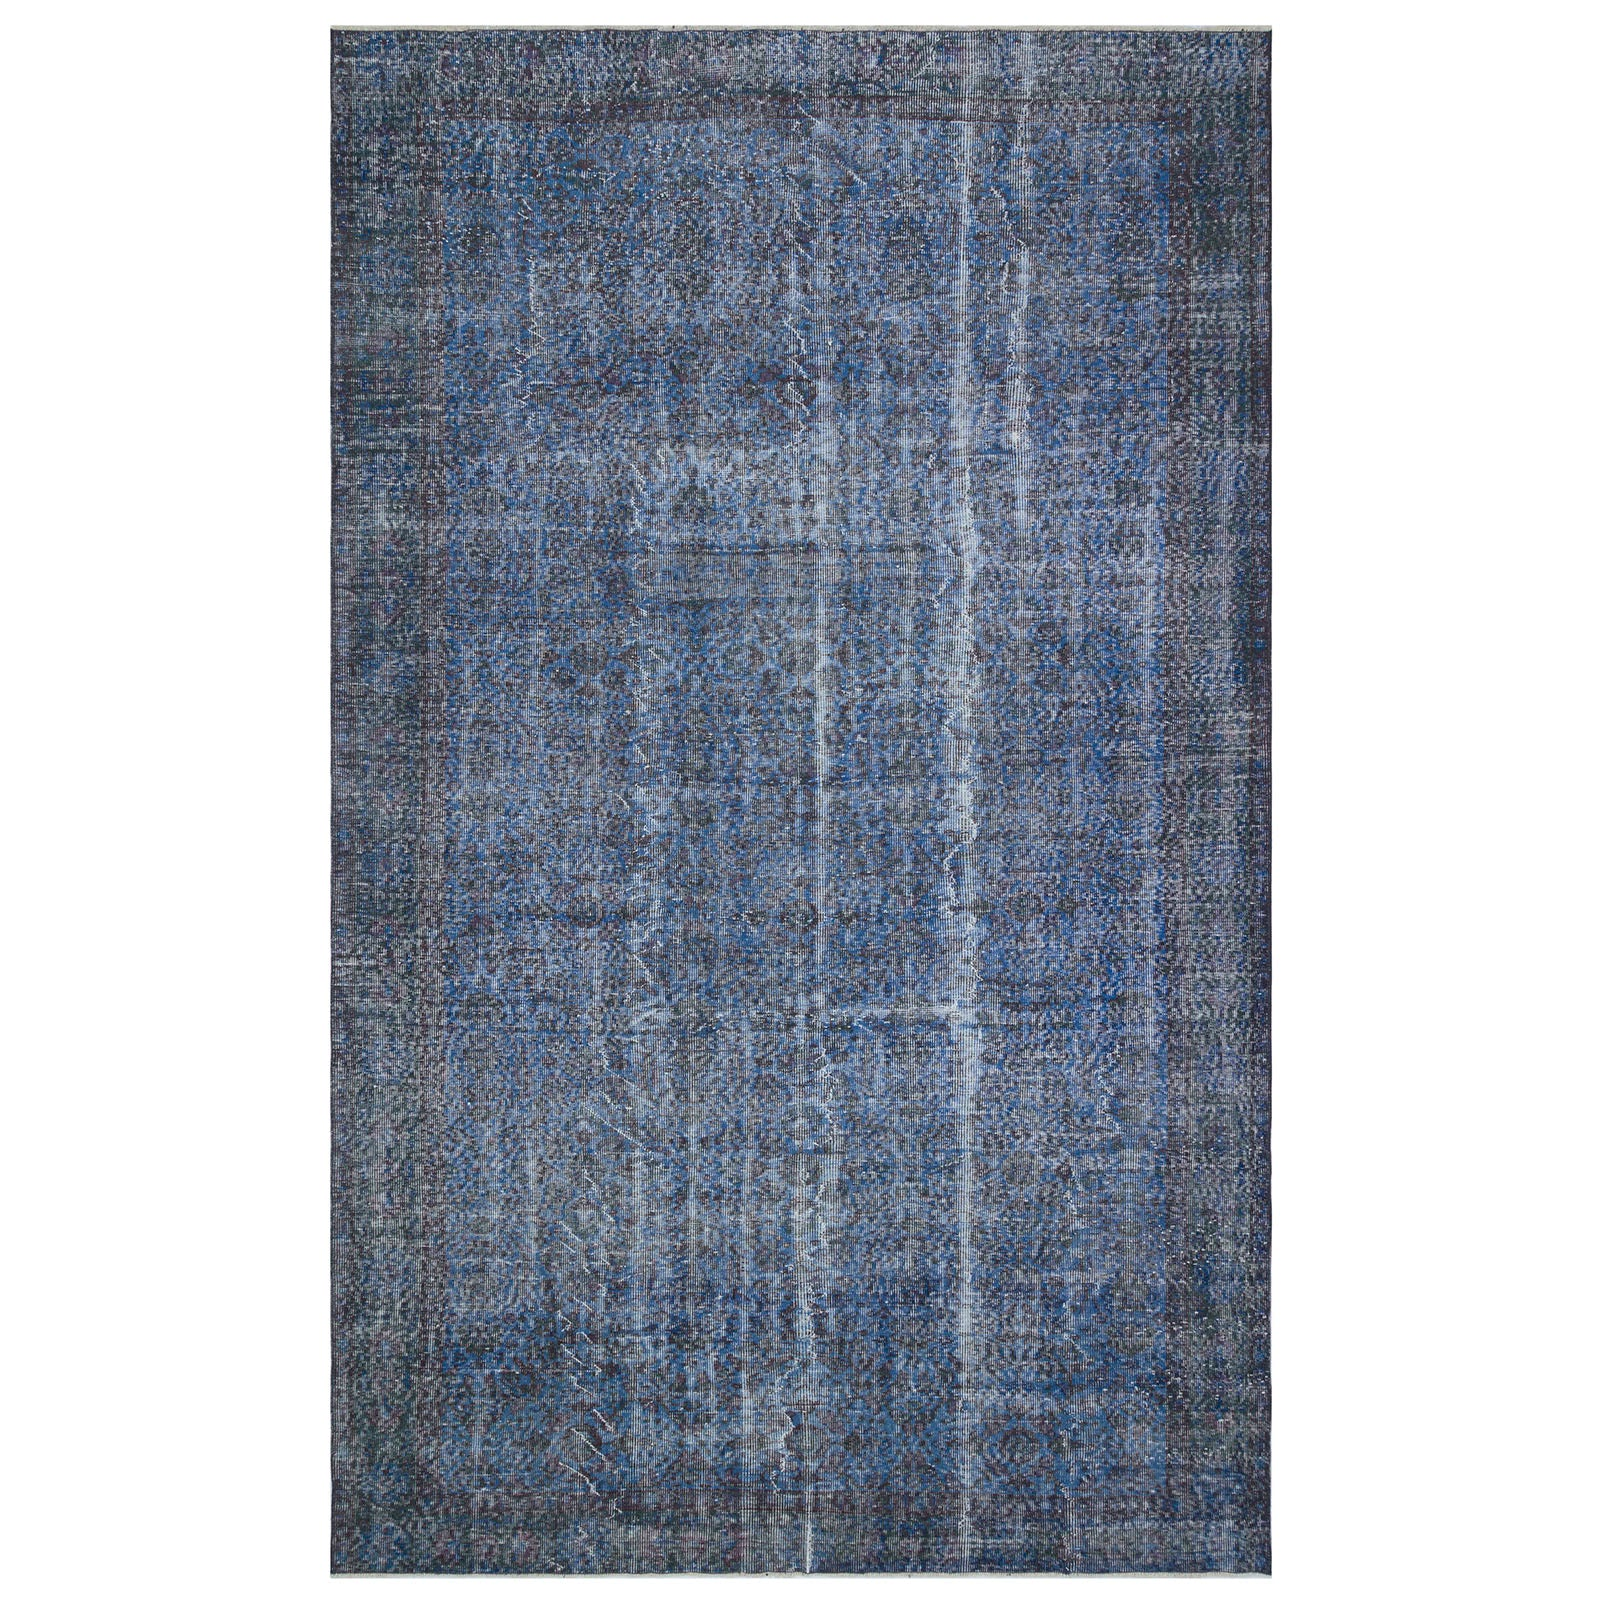 Hali 203X322  CM Bursa Handmade over dyed rug  1718